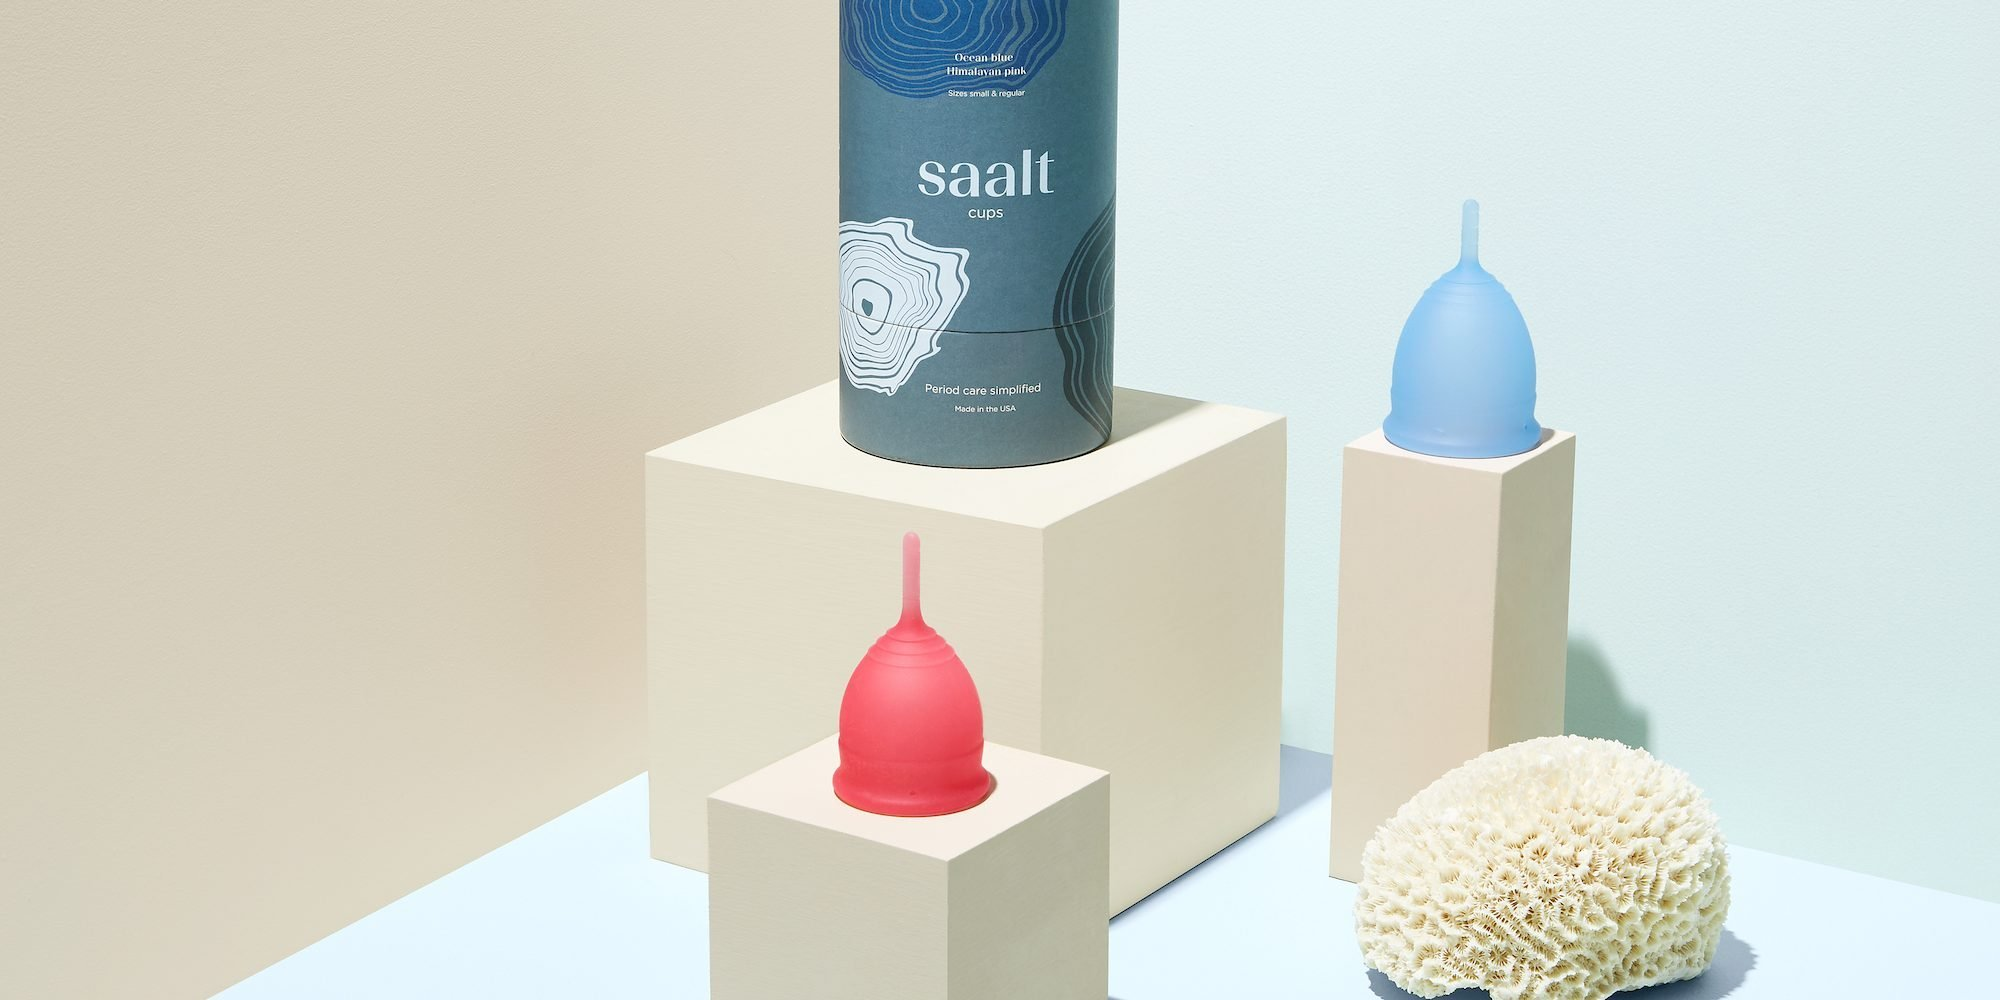 Revolve Branches Into Sustainable Period Products With The Launch Of Saalt Menstrual Cups